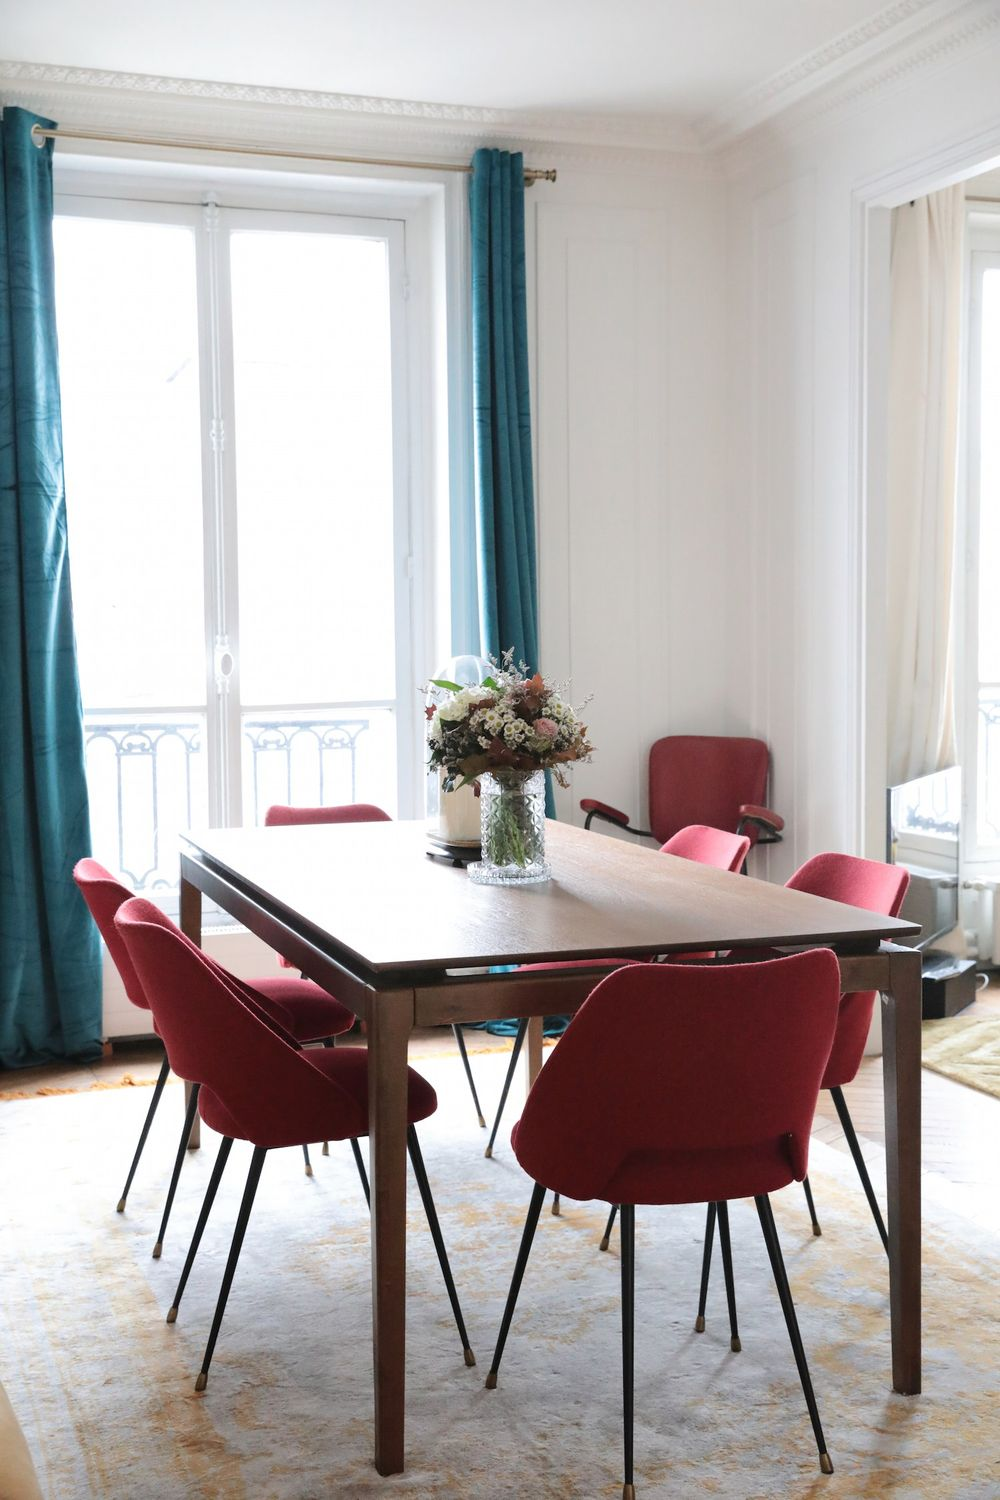 Parisian dining room with Turquoise curtains and pink chairs via Hello-hello Camille Omerin